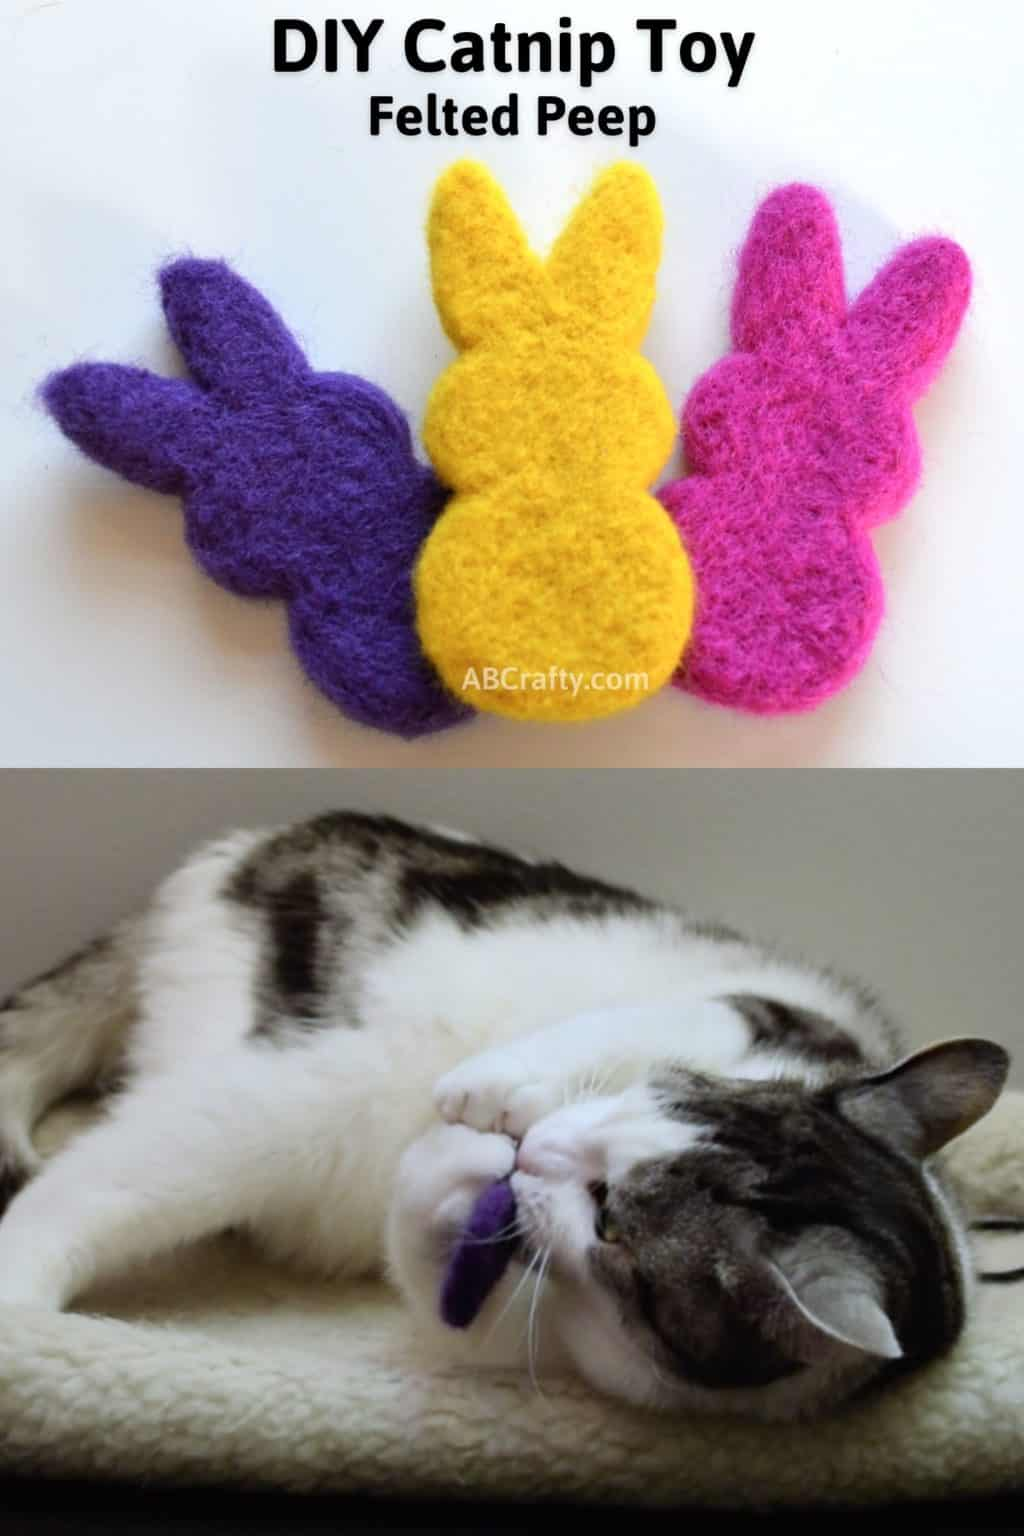 """Yellow, purple, and pink needle felted bunny peeps made of wool and a white cat with black and grey spots playing with the purple bunny. Title says """"DIY Catnip Toy - Felted Peep"""""""